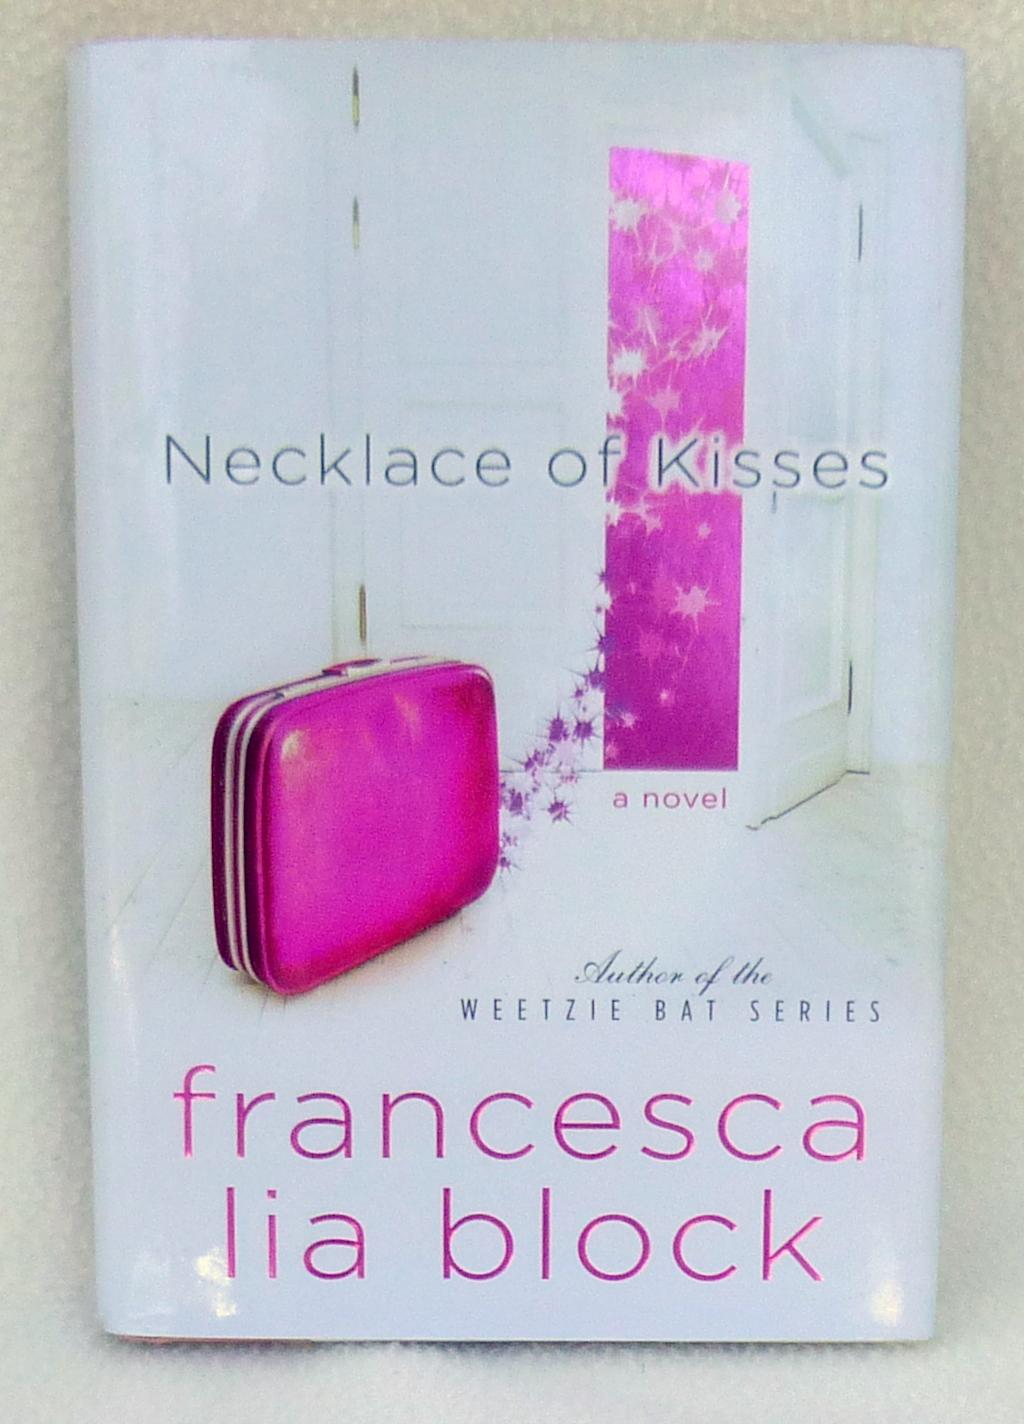 Necklace of Kisses